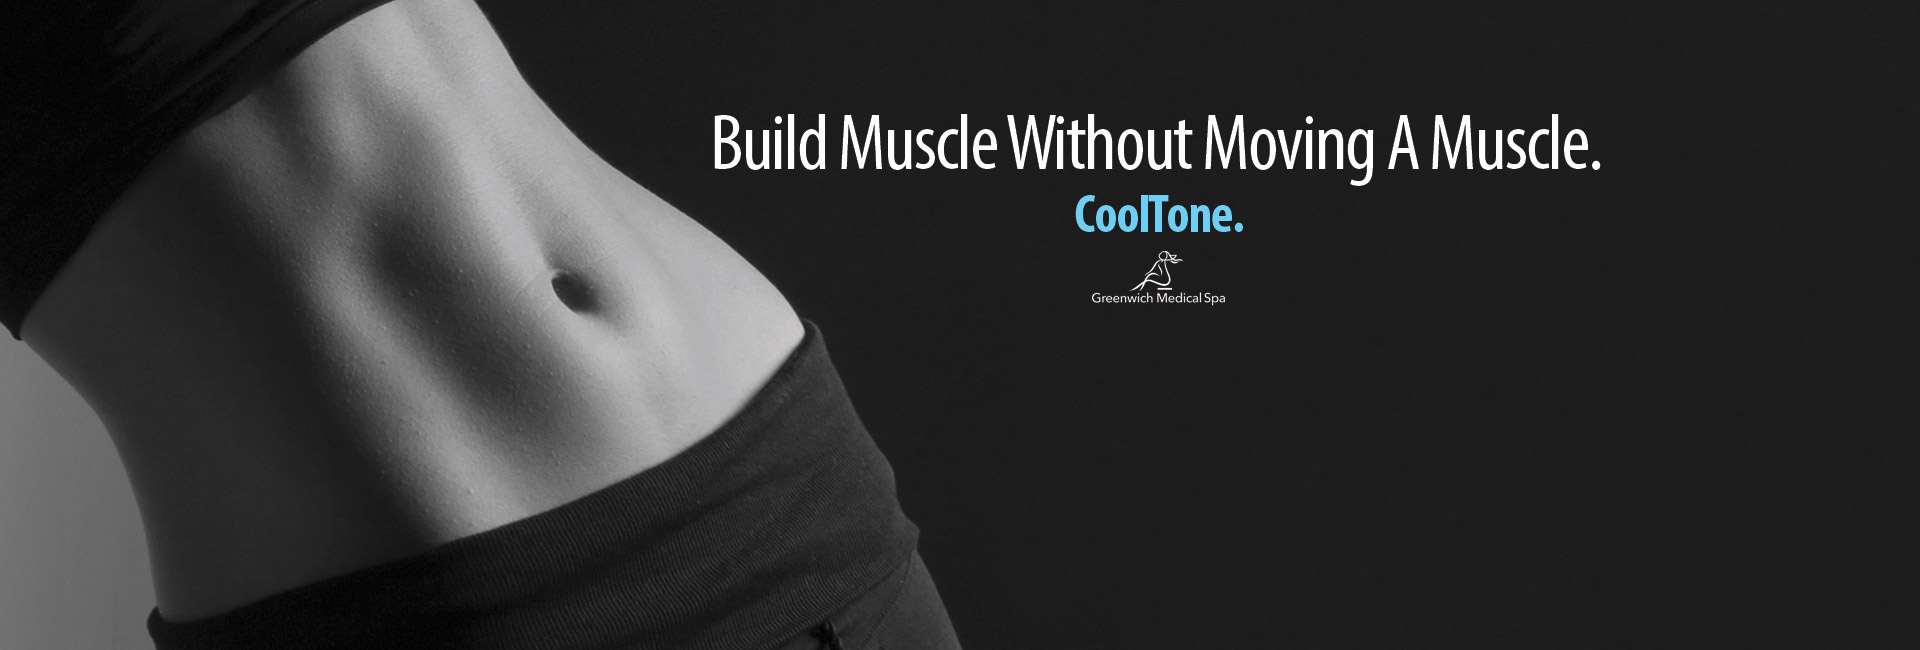 build muscle with cooltone